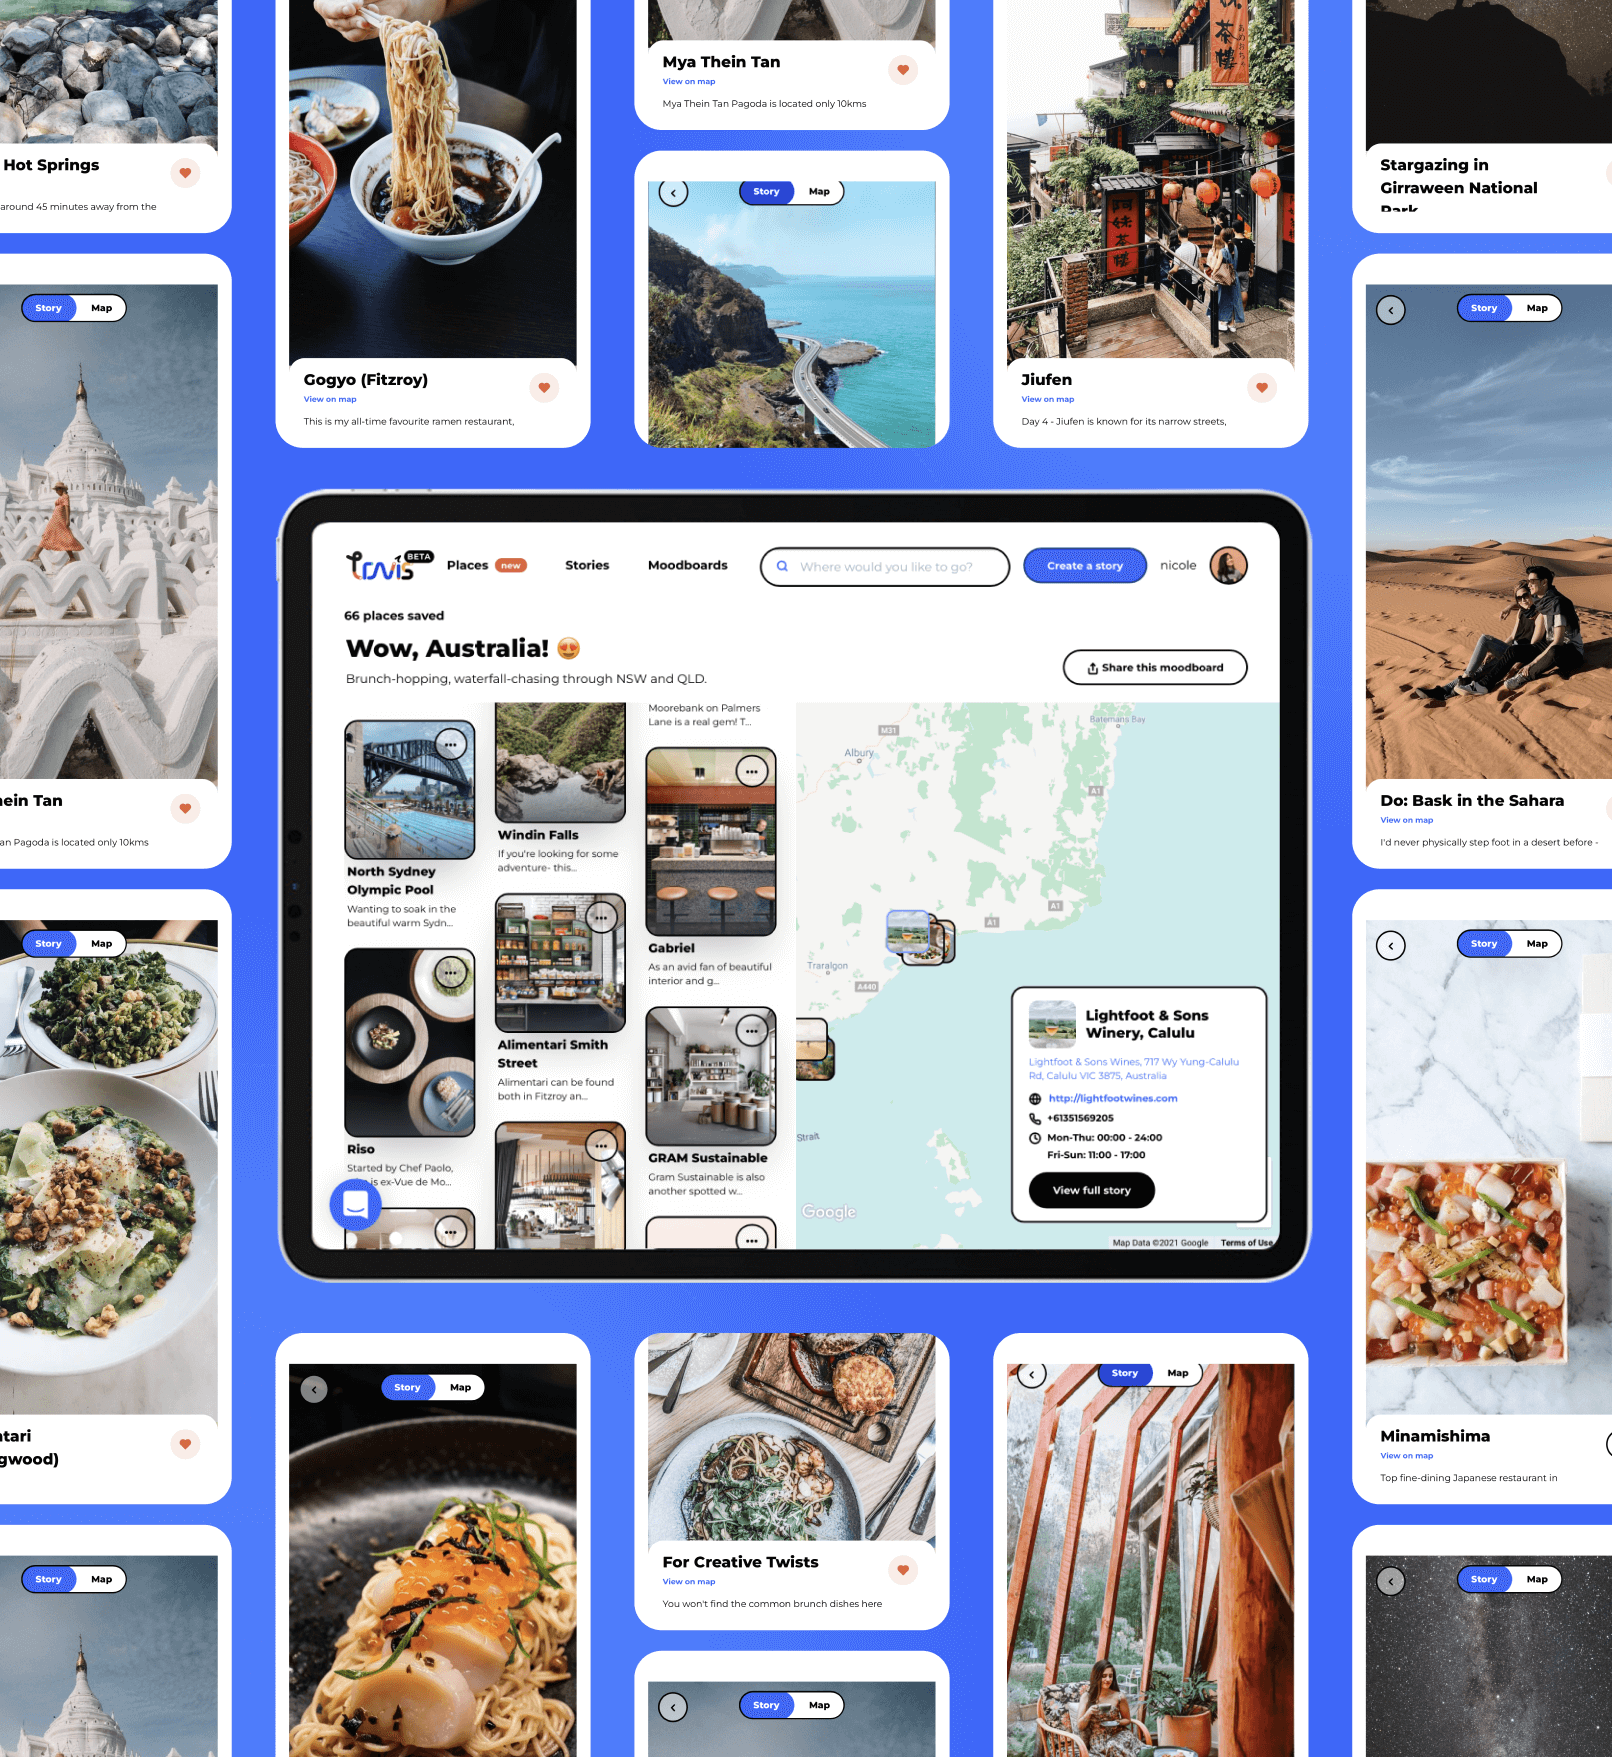 Travis moodboard surrounded by various travel photos on a blue background